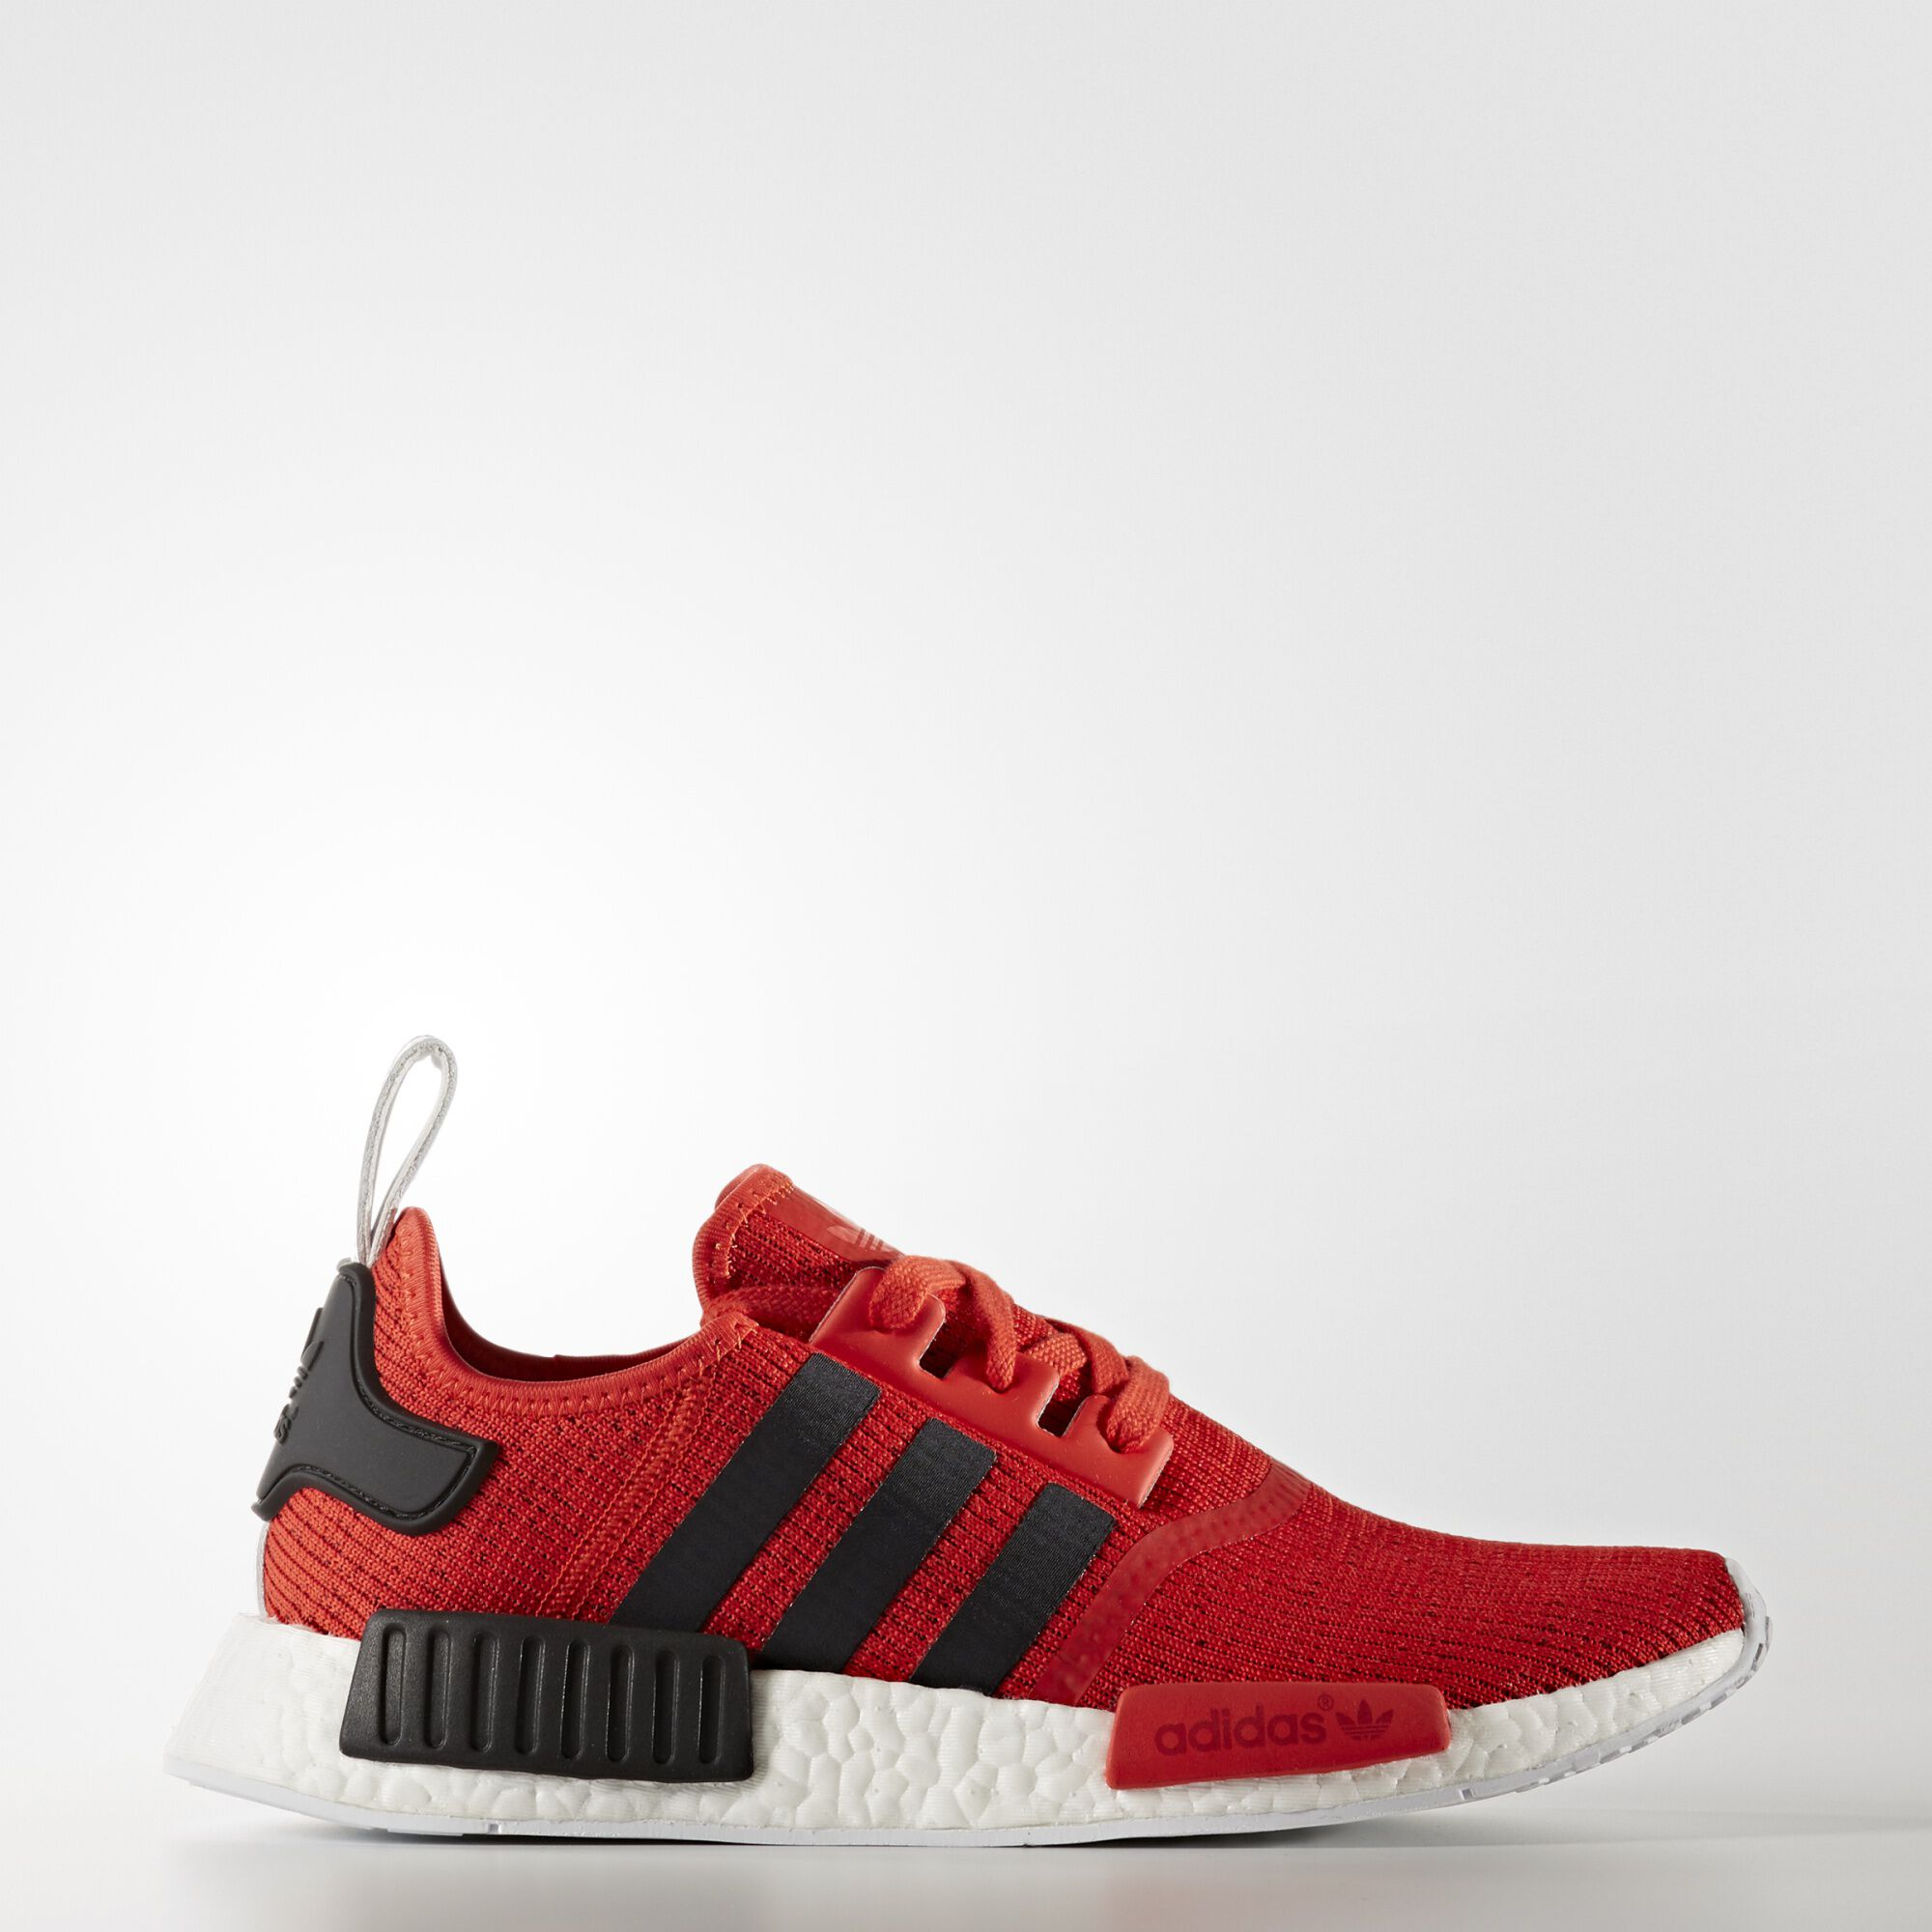 Adidas Nmd Red Colour